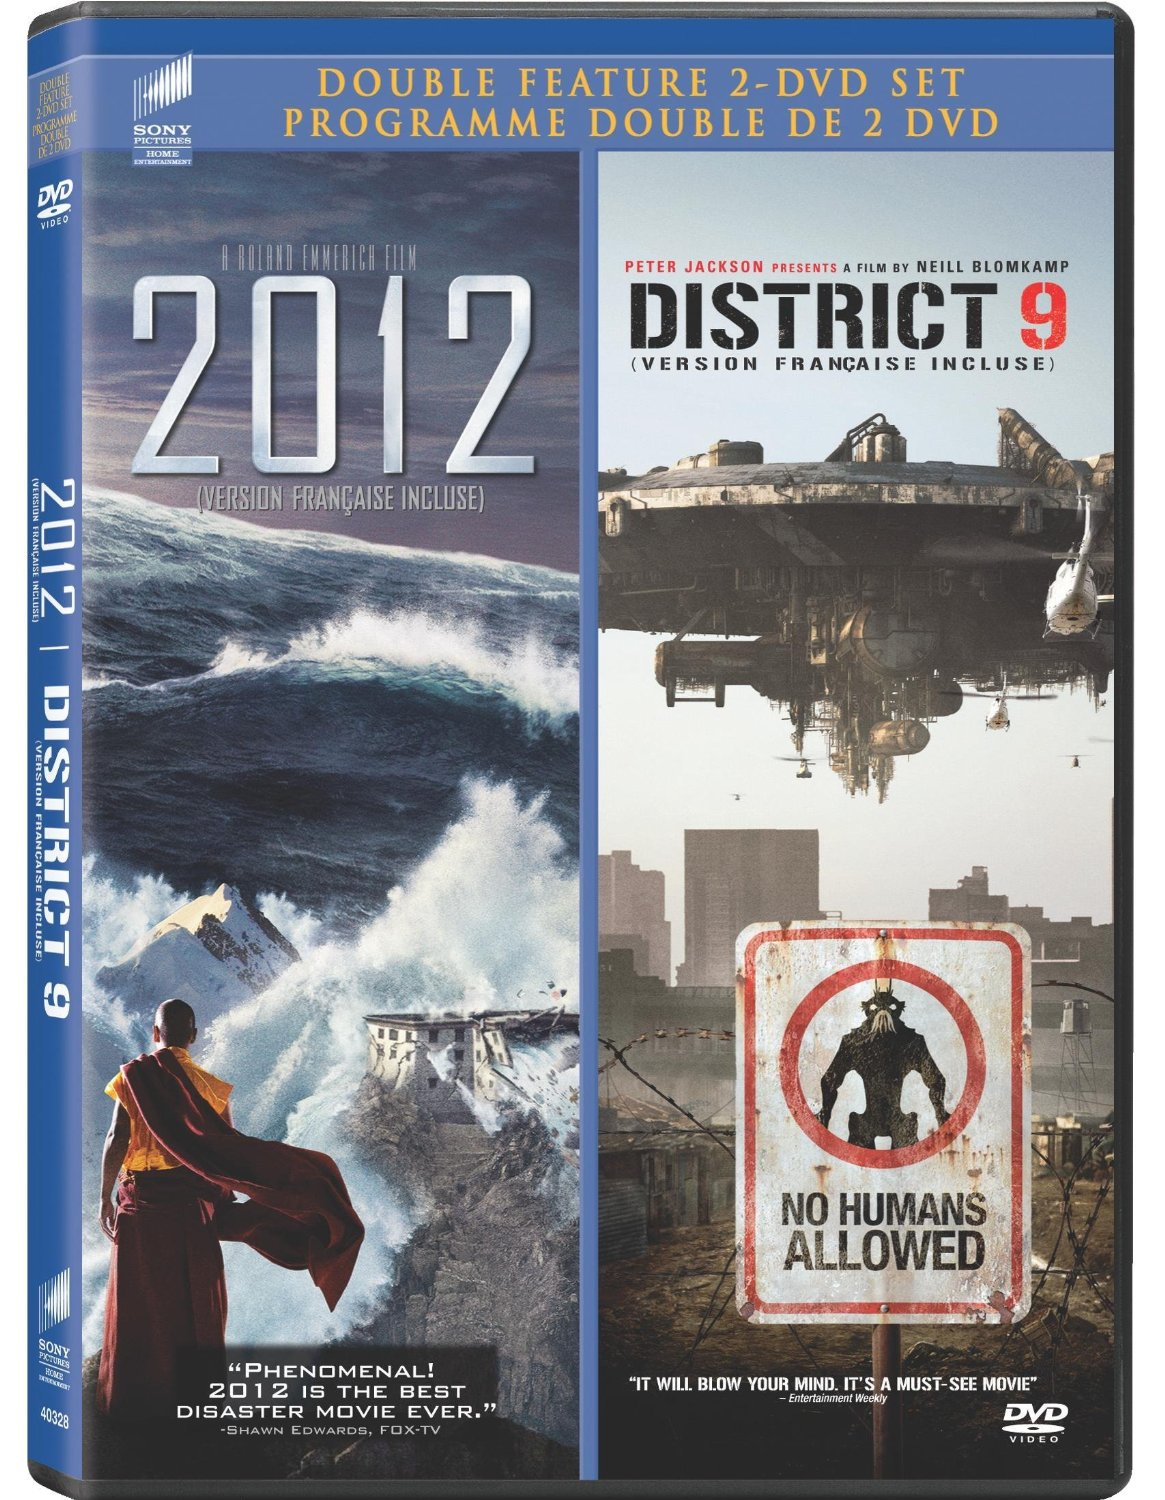 2012 / District 9 On DVD